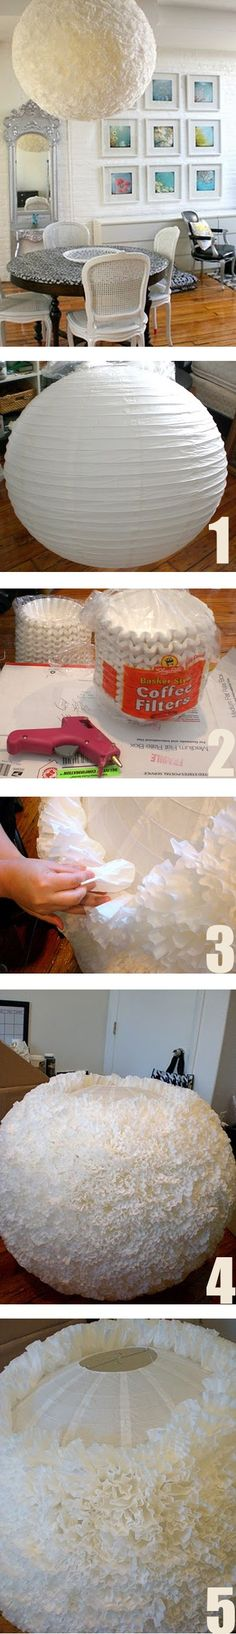 DIY light shade hack Looks like a big ball of flammable fluff... Maybe in the bedroom for softer lighting.